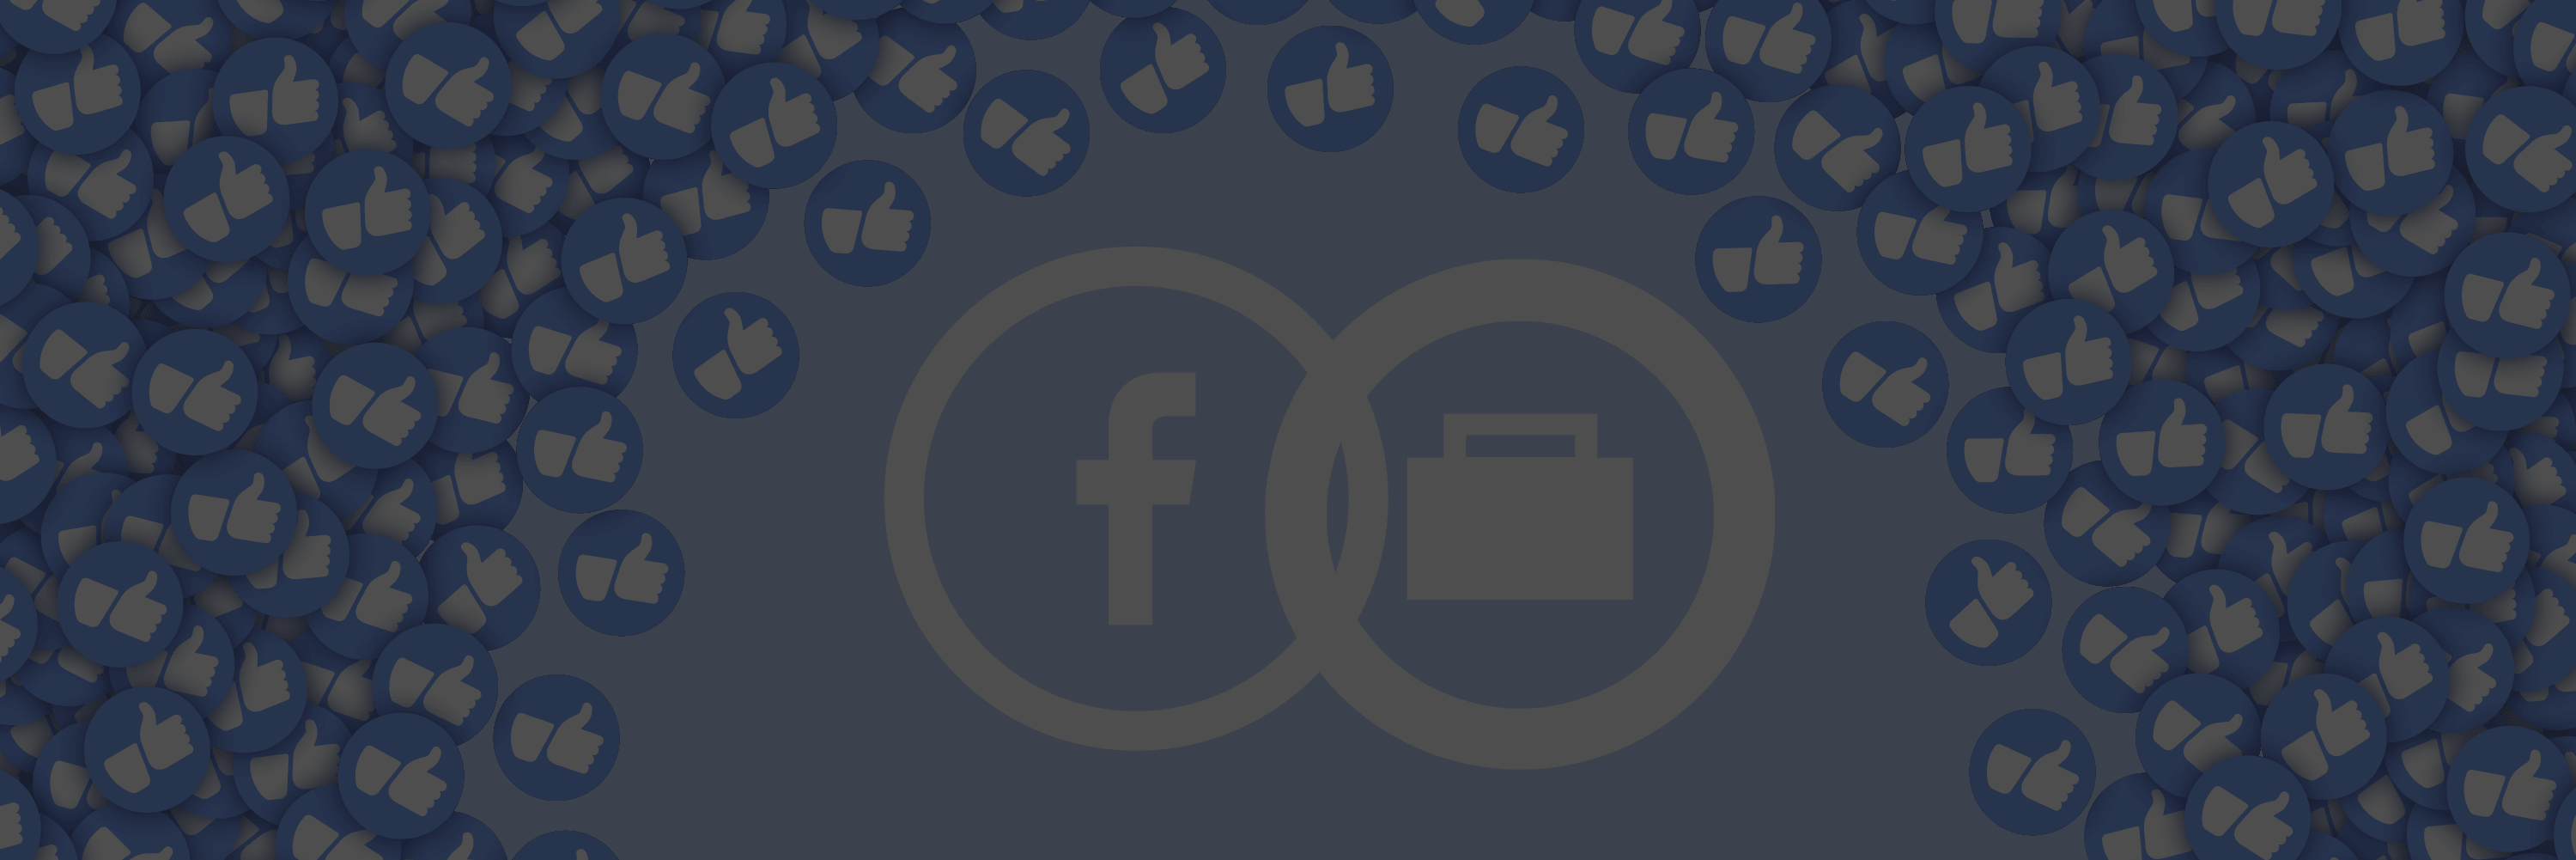 The most creative examples of using Facebook for business